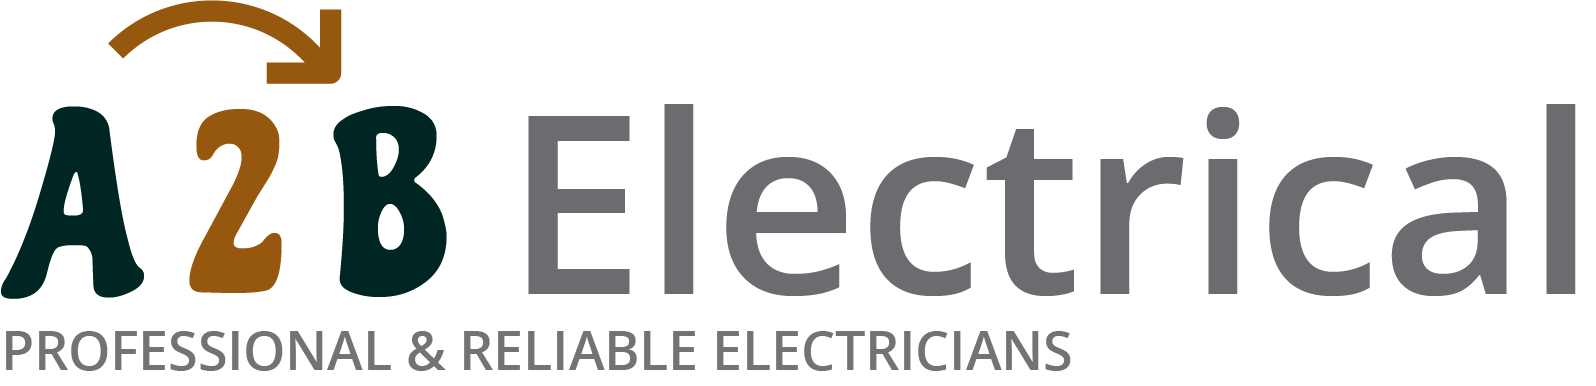 If you have electrical wiring problems in Barnsbury, we can provide an electrician to have a look for you.